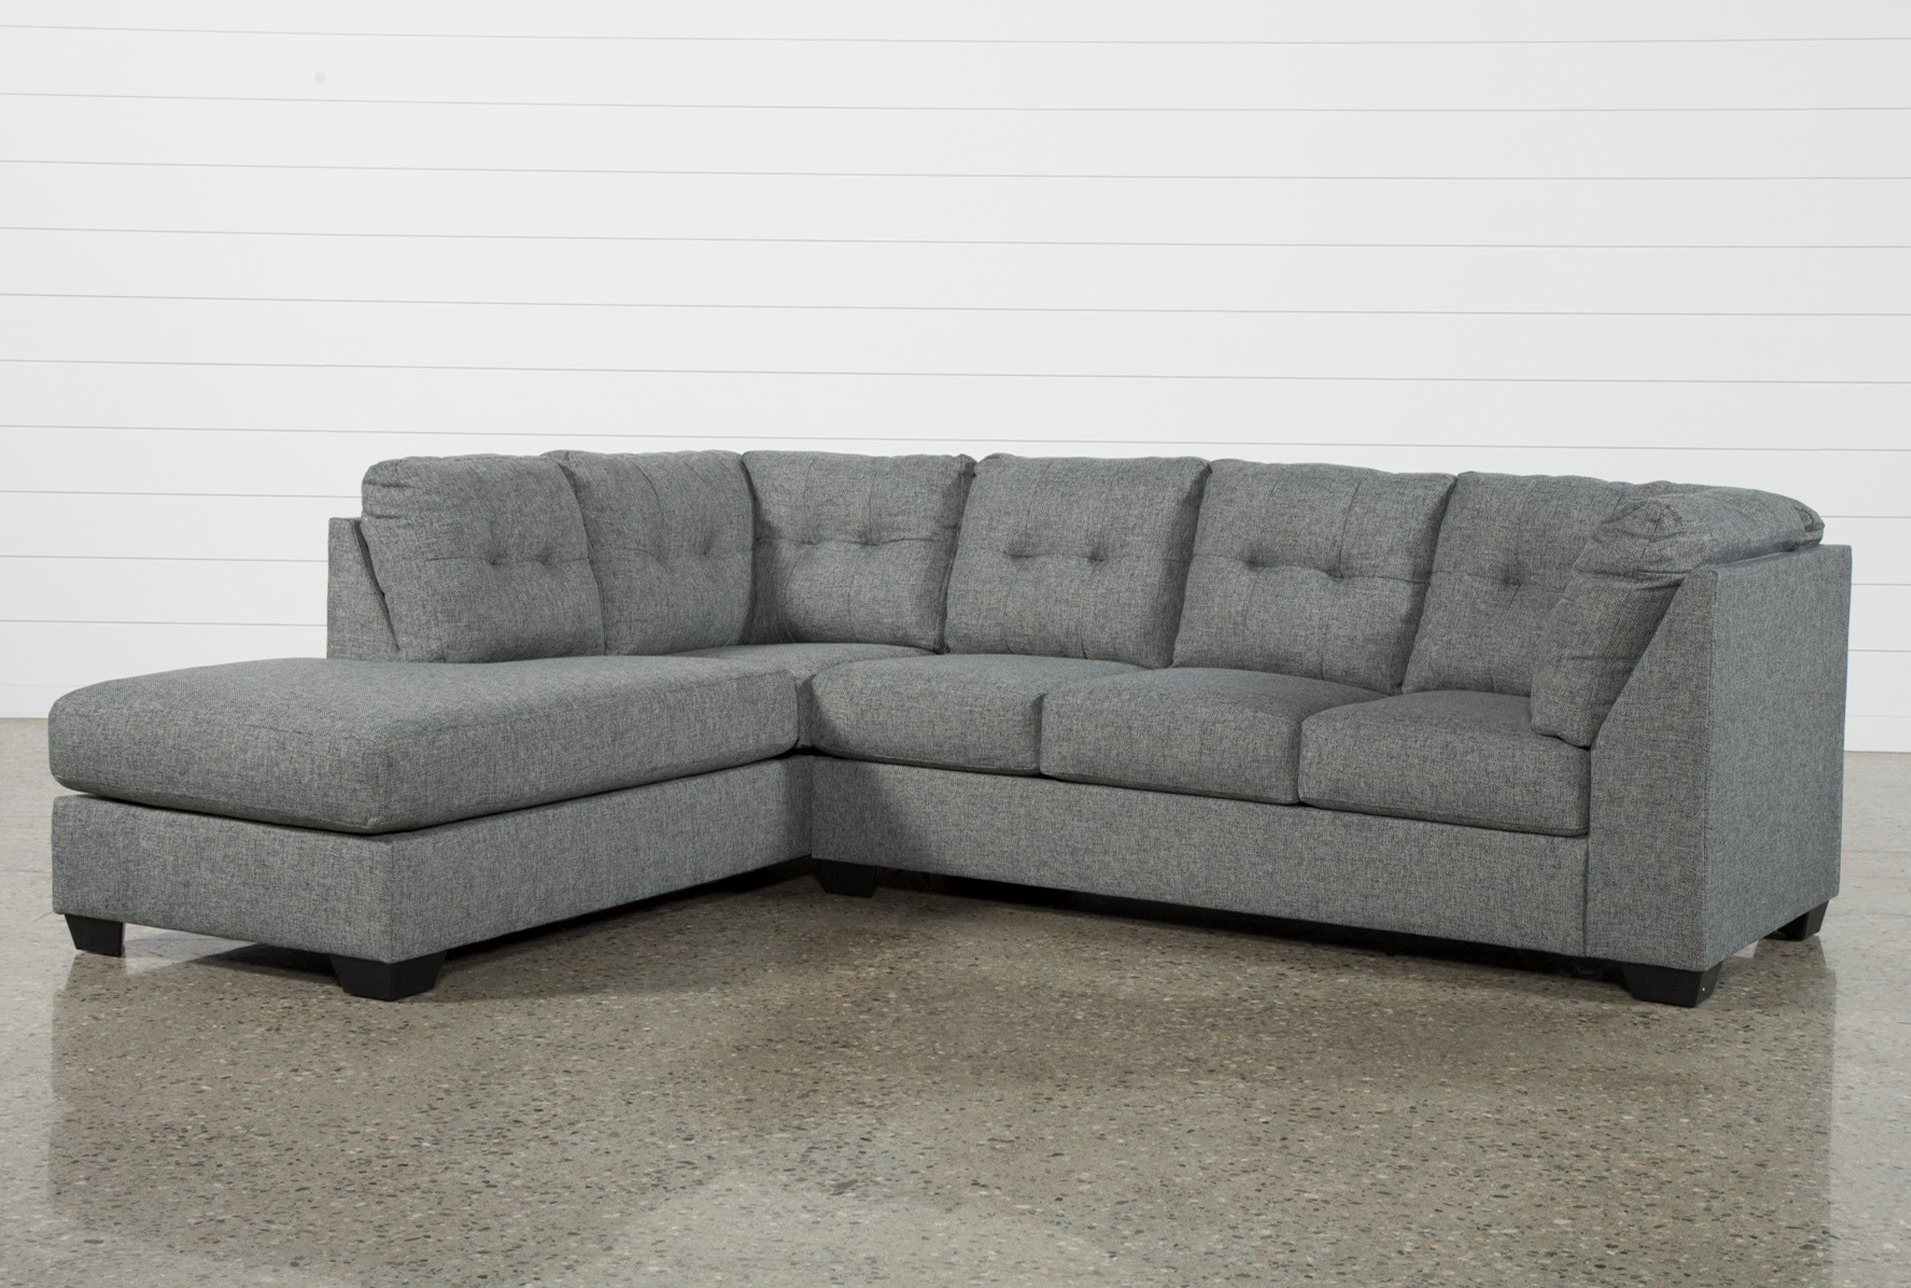 Lucy Grey 2 Piece Sleeper Sectionals With Raf Chaise With Regard To 2019 Sleeper Sectional With Chaise – Tidex (View 11 of 20)